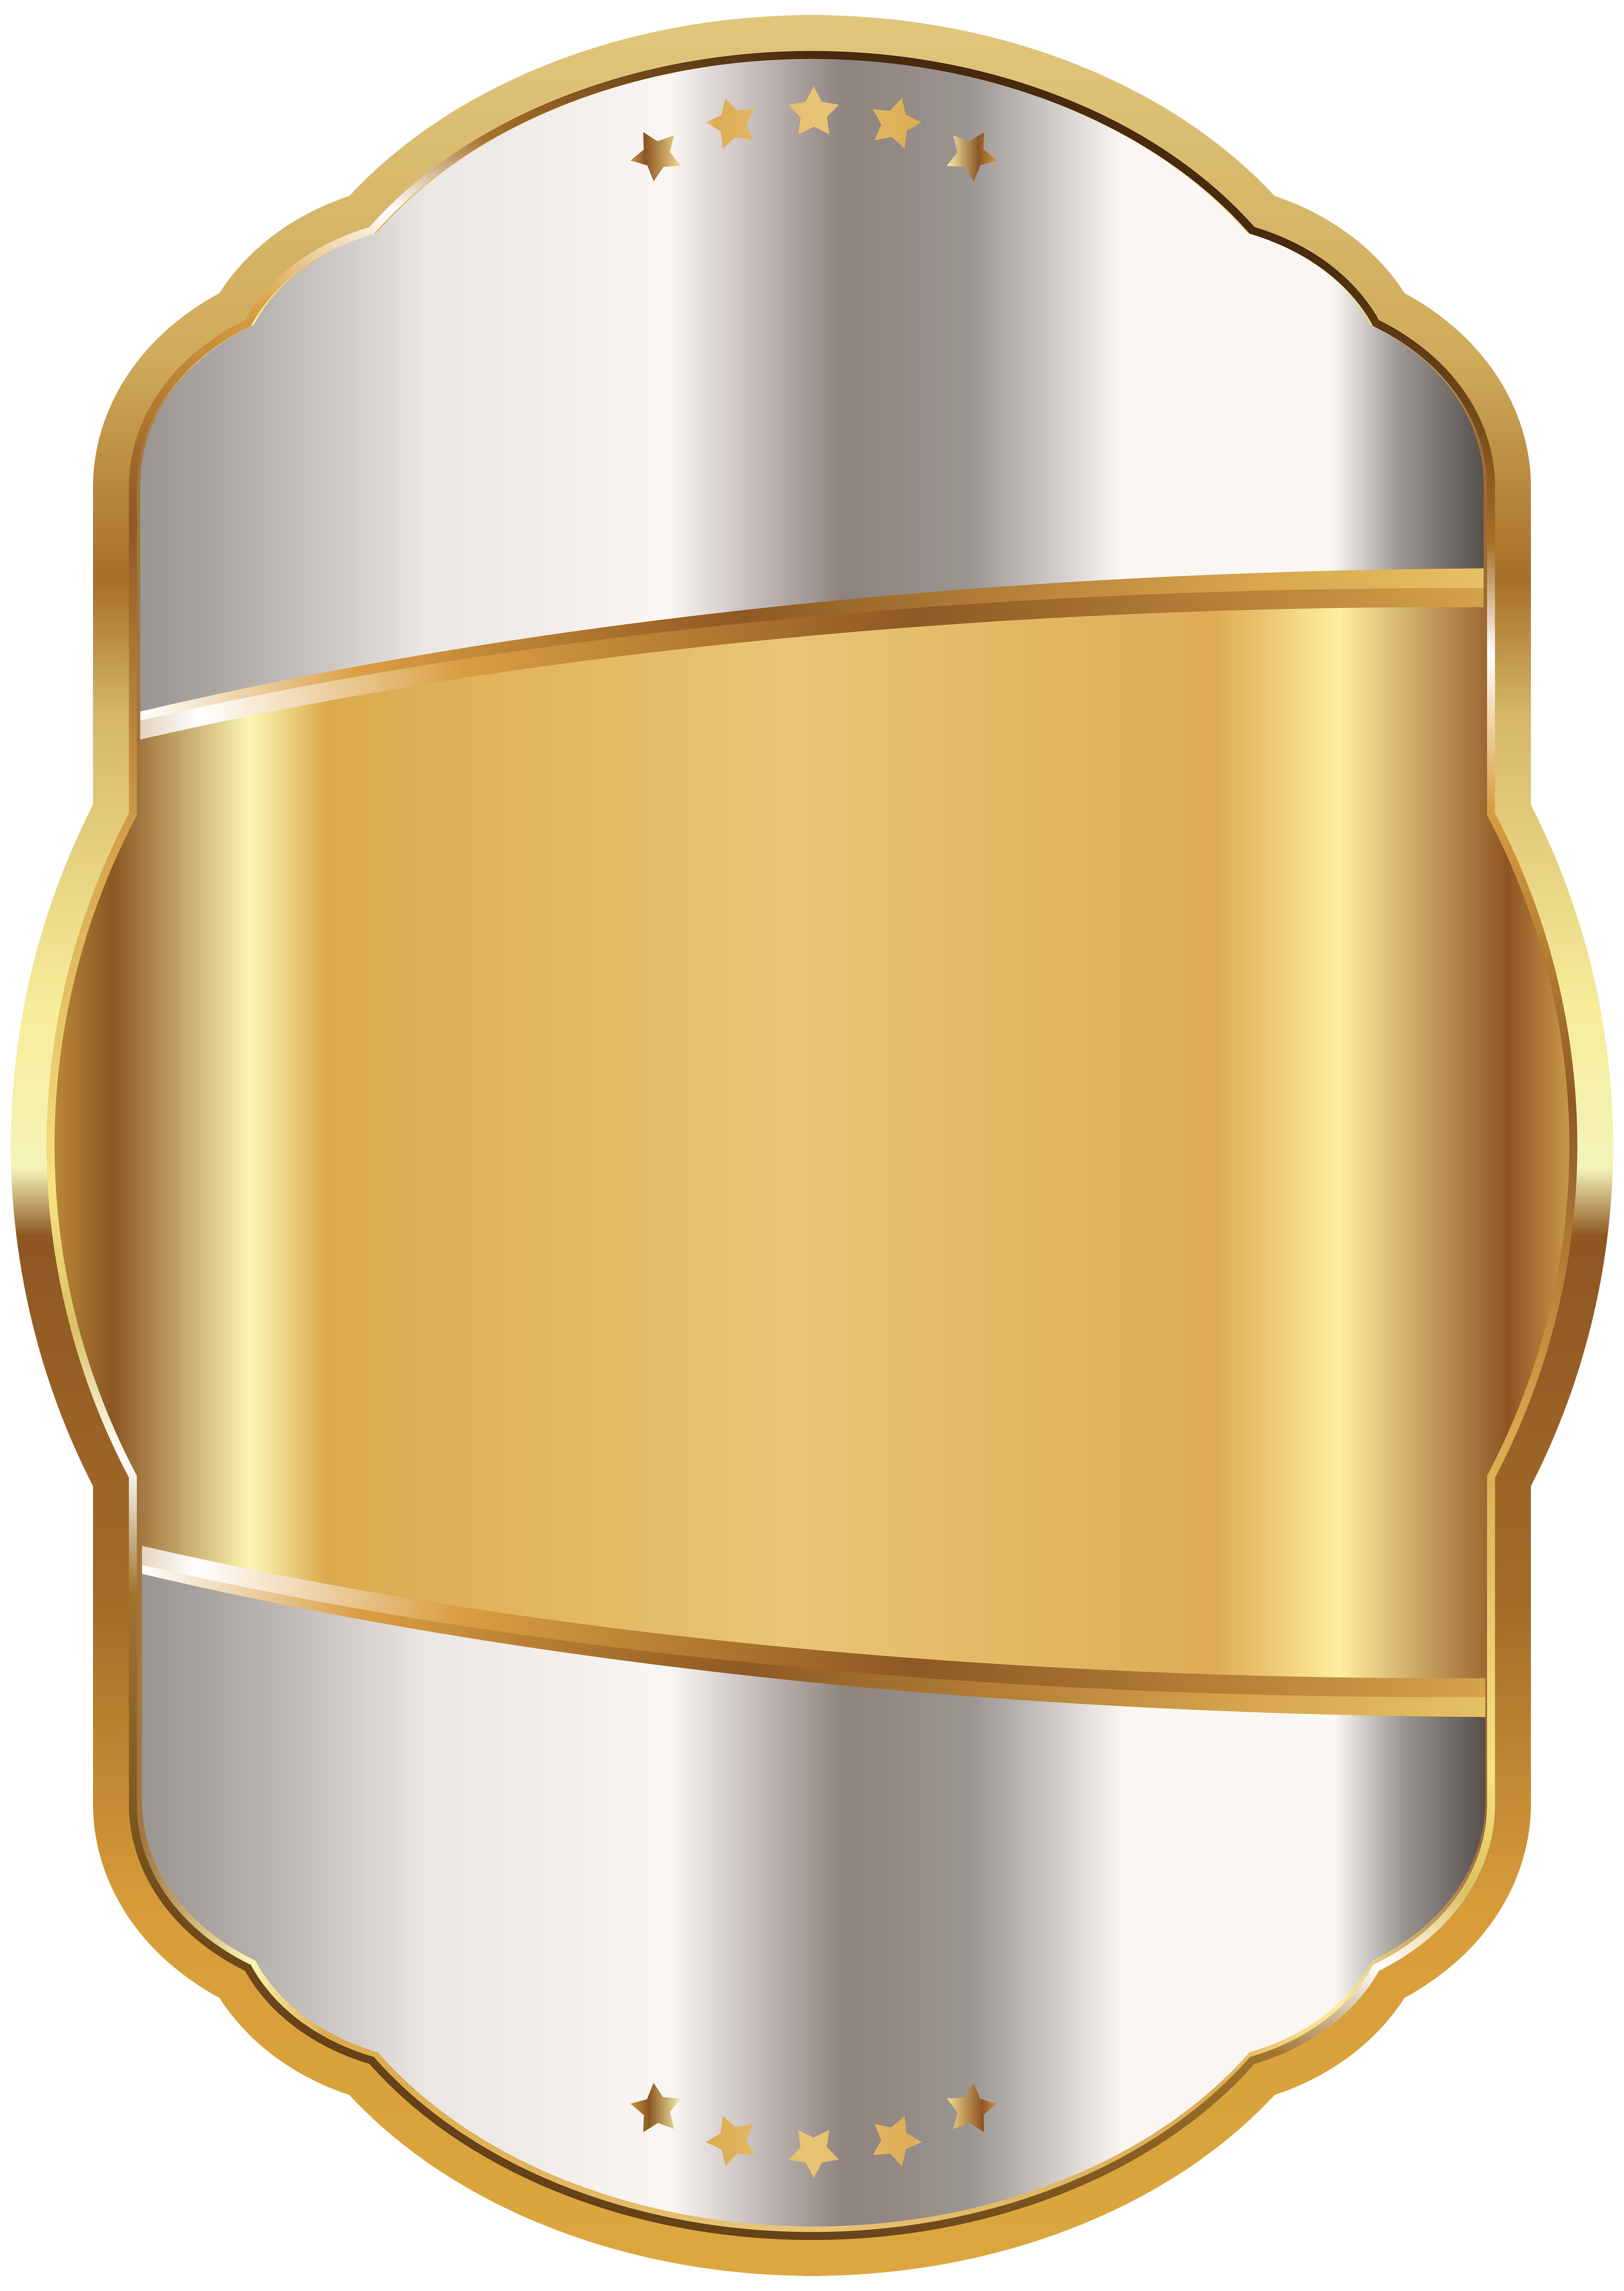 Label Template White Gold Clip Art PNG Image.